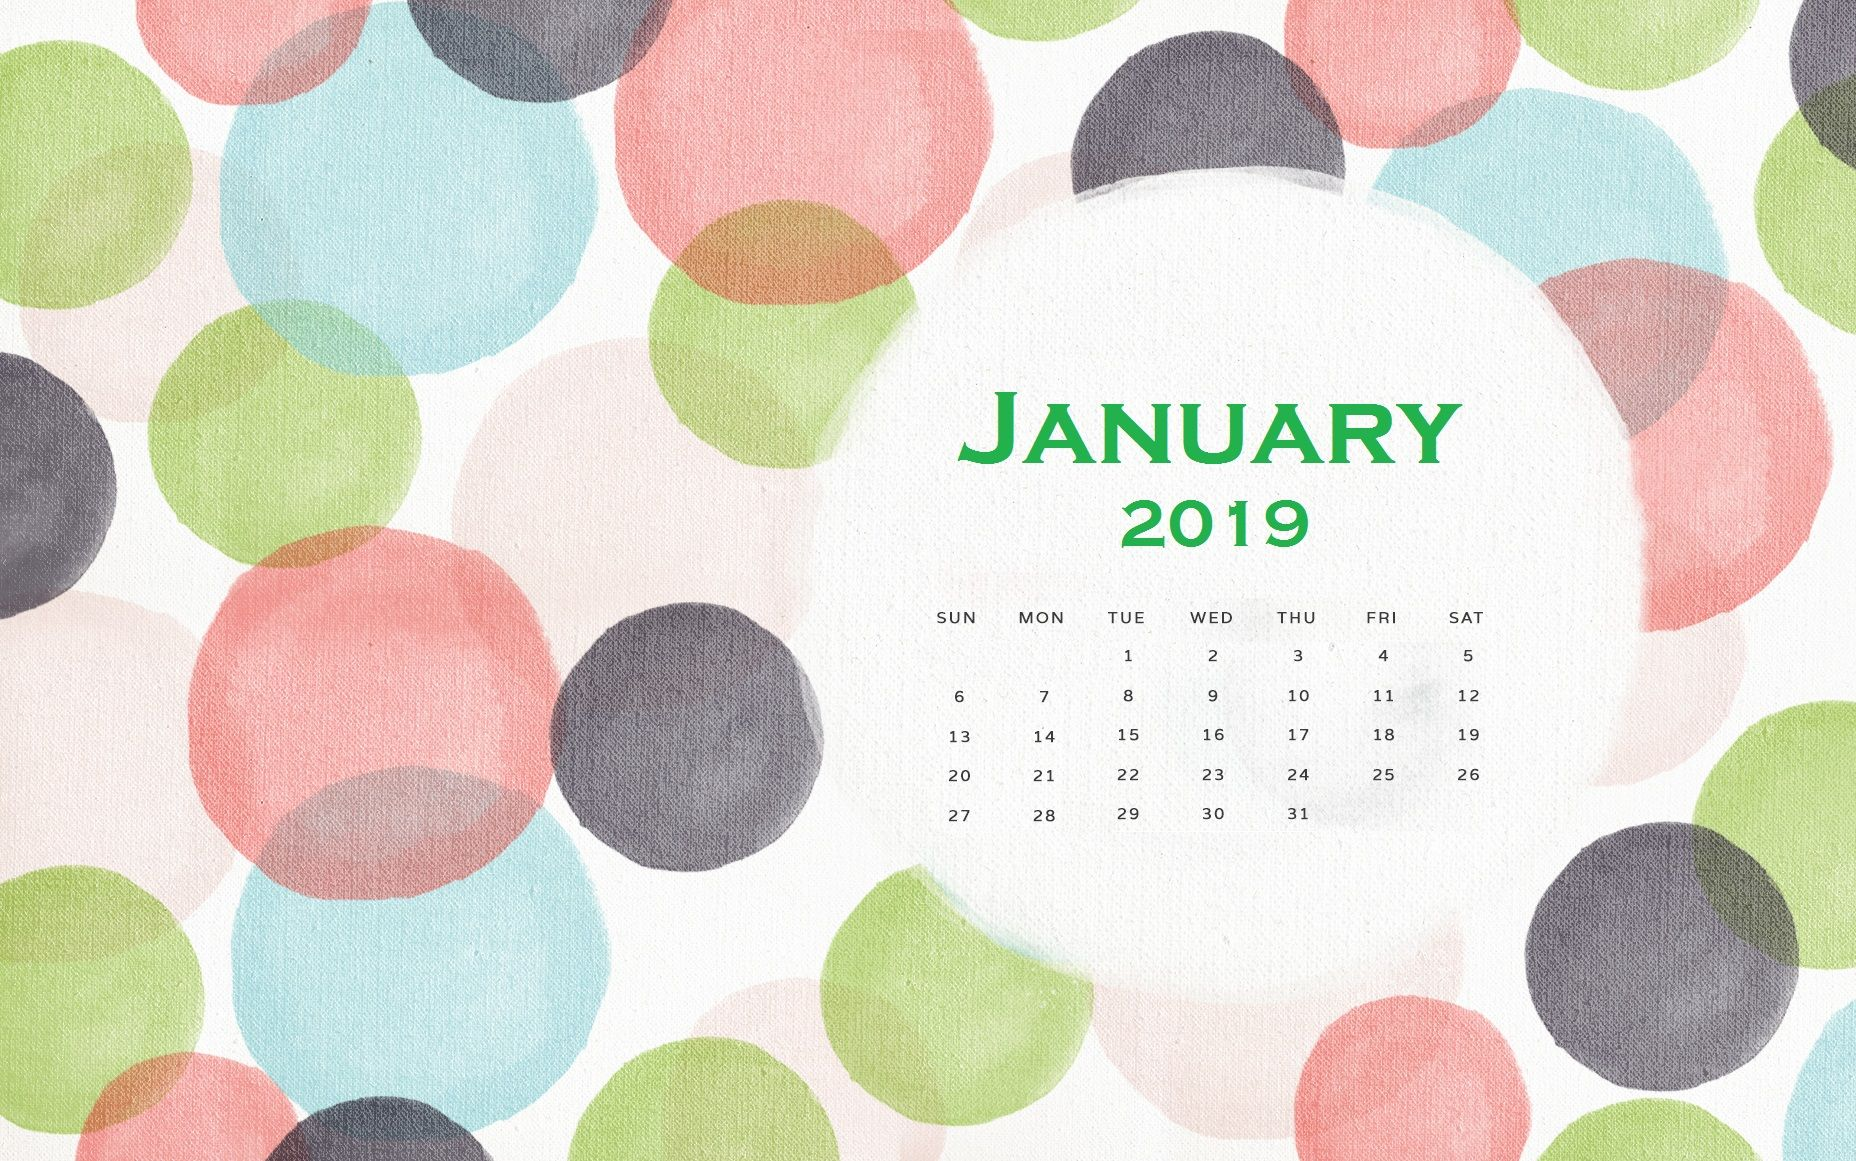 Cute January 2019 Calendar Wallpaper Calendar Wallpaper Wallpaper Cute Computer Backgrounds